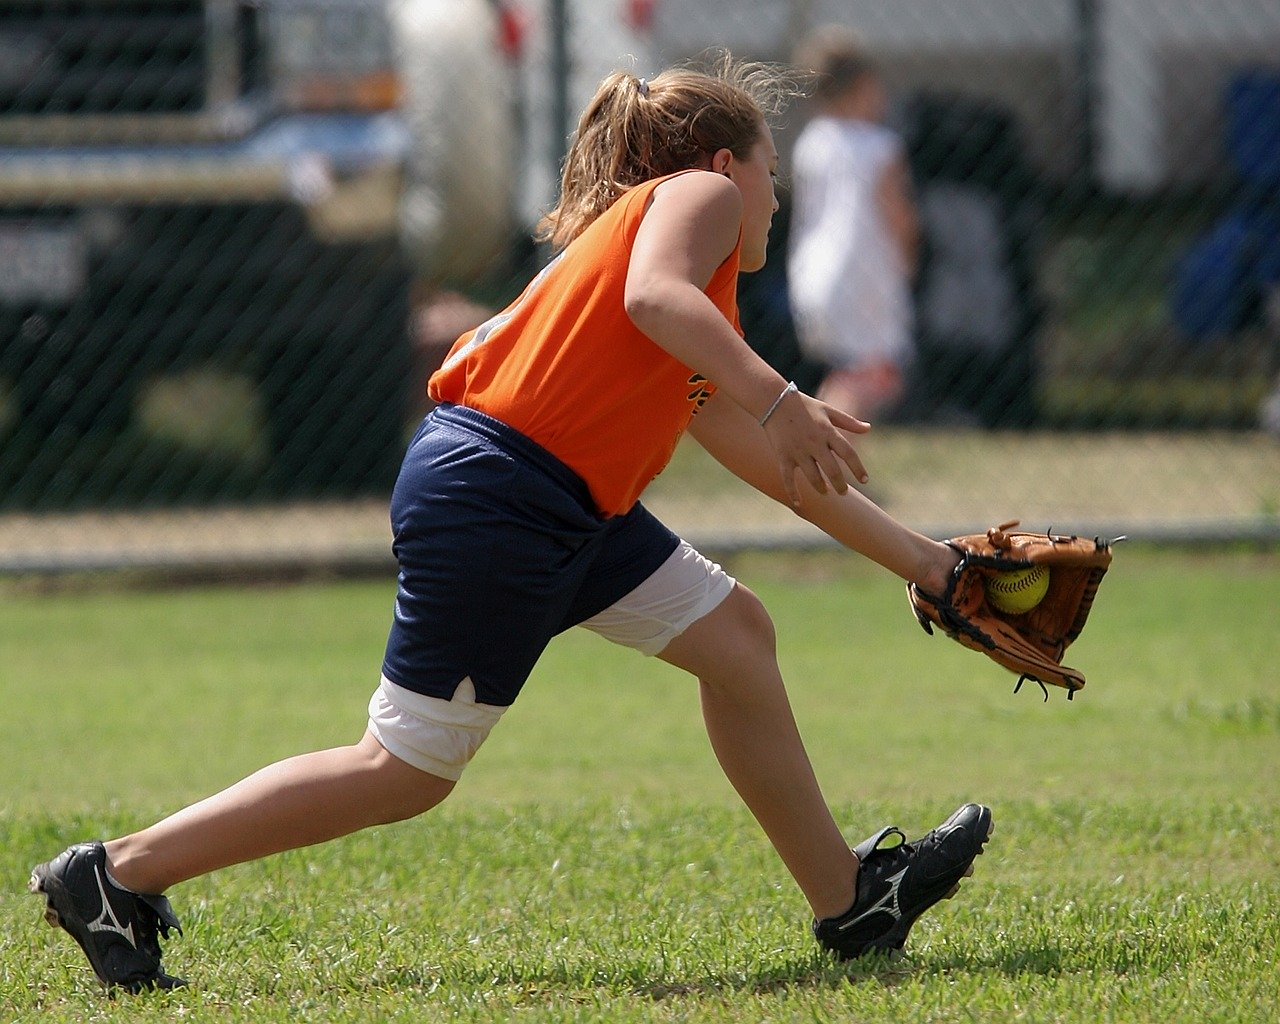 softball throwing clinics